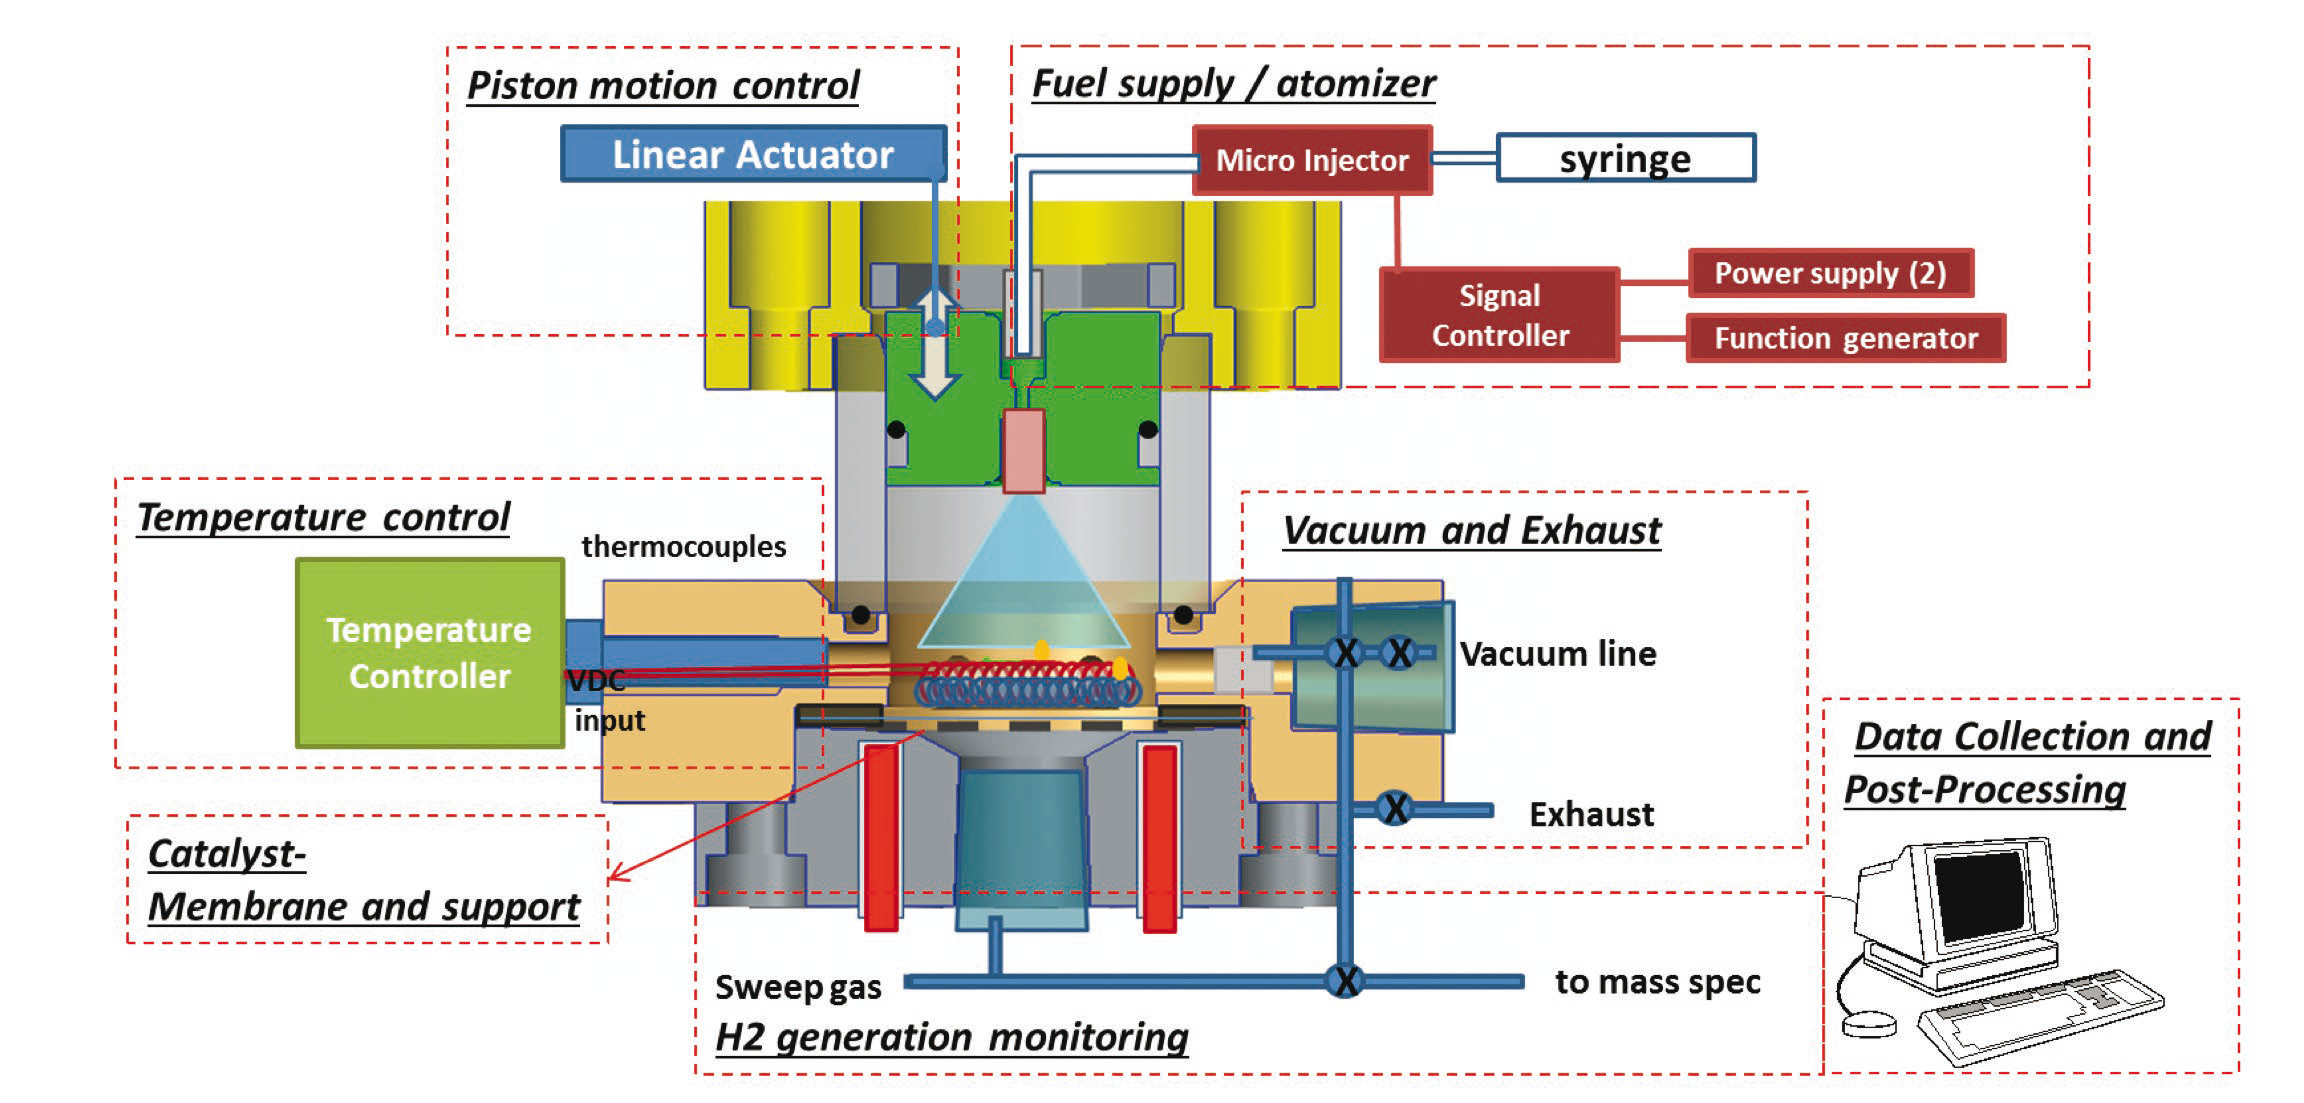 Hydrogen Production By Variable Volume Membrane Batch Reactors With Piping Instrumentation Diagram Schematic Of The Experimental Champ Ddir Reactor And